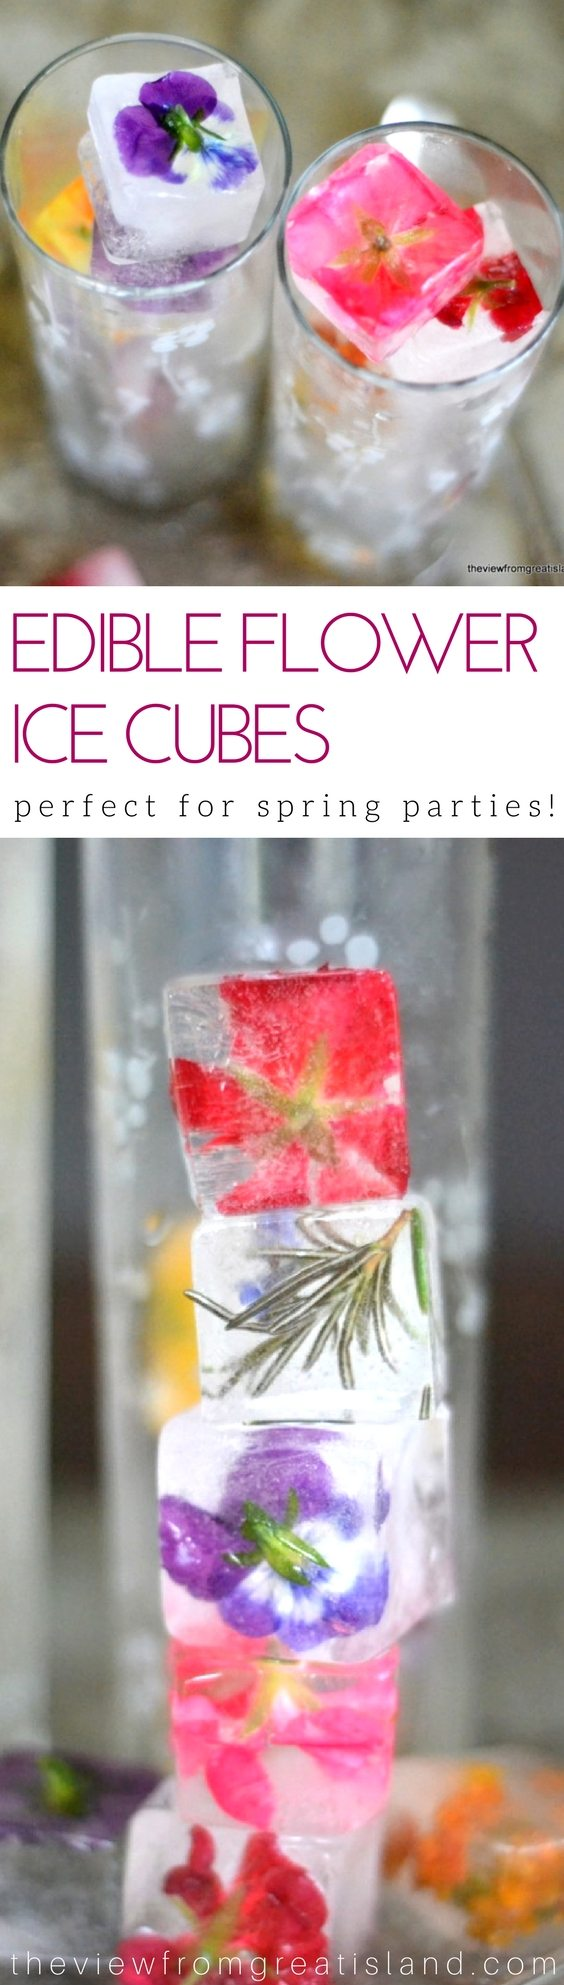 Edible Flower Ice Cubes ~ up your beverage game this season with the prettiest ice cubes ever! #spring #edibleflowers #flowericecubes #entertaining #weddingshower #brunch #flowers #drinks